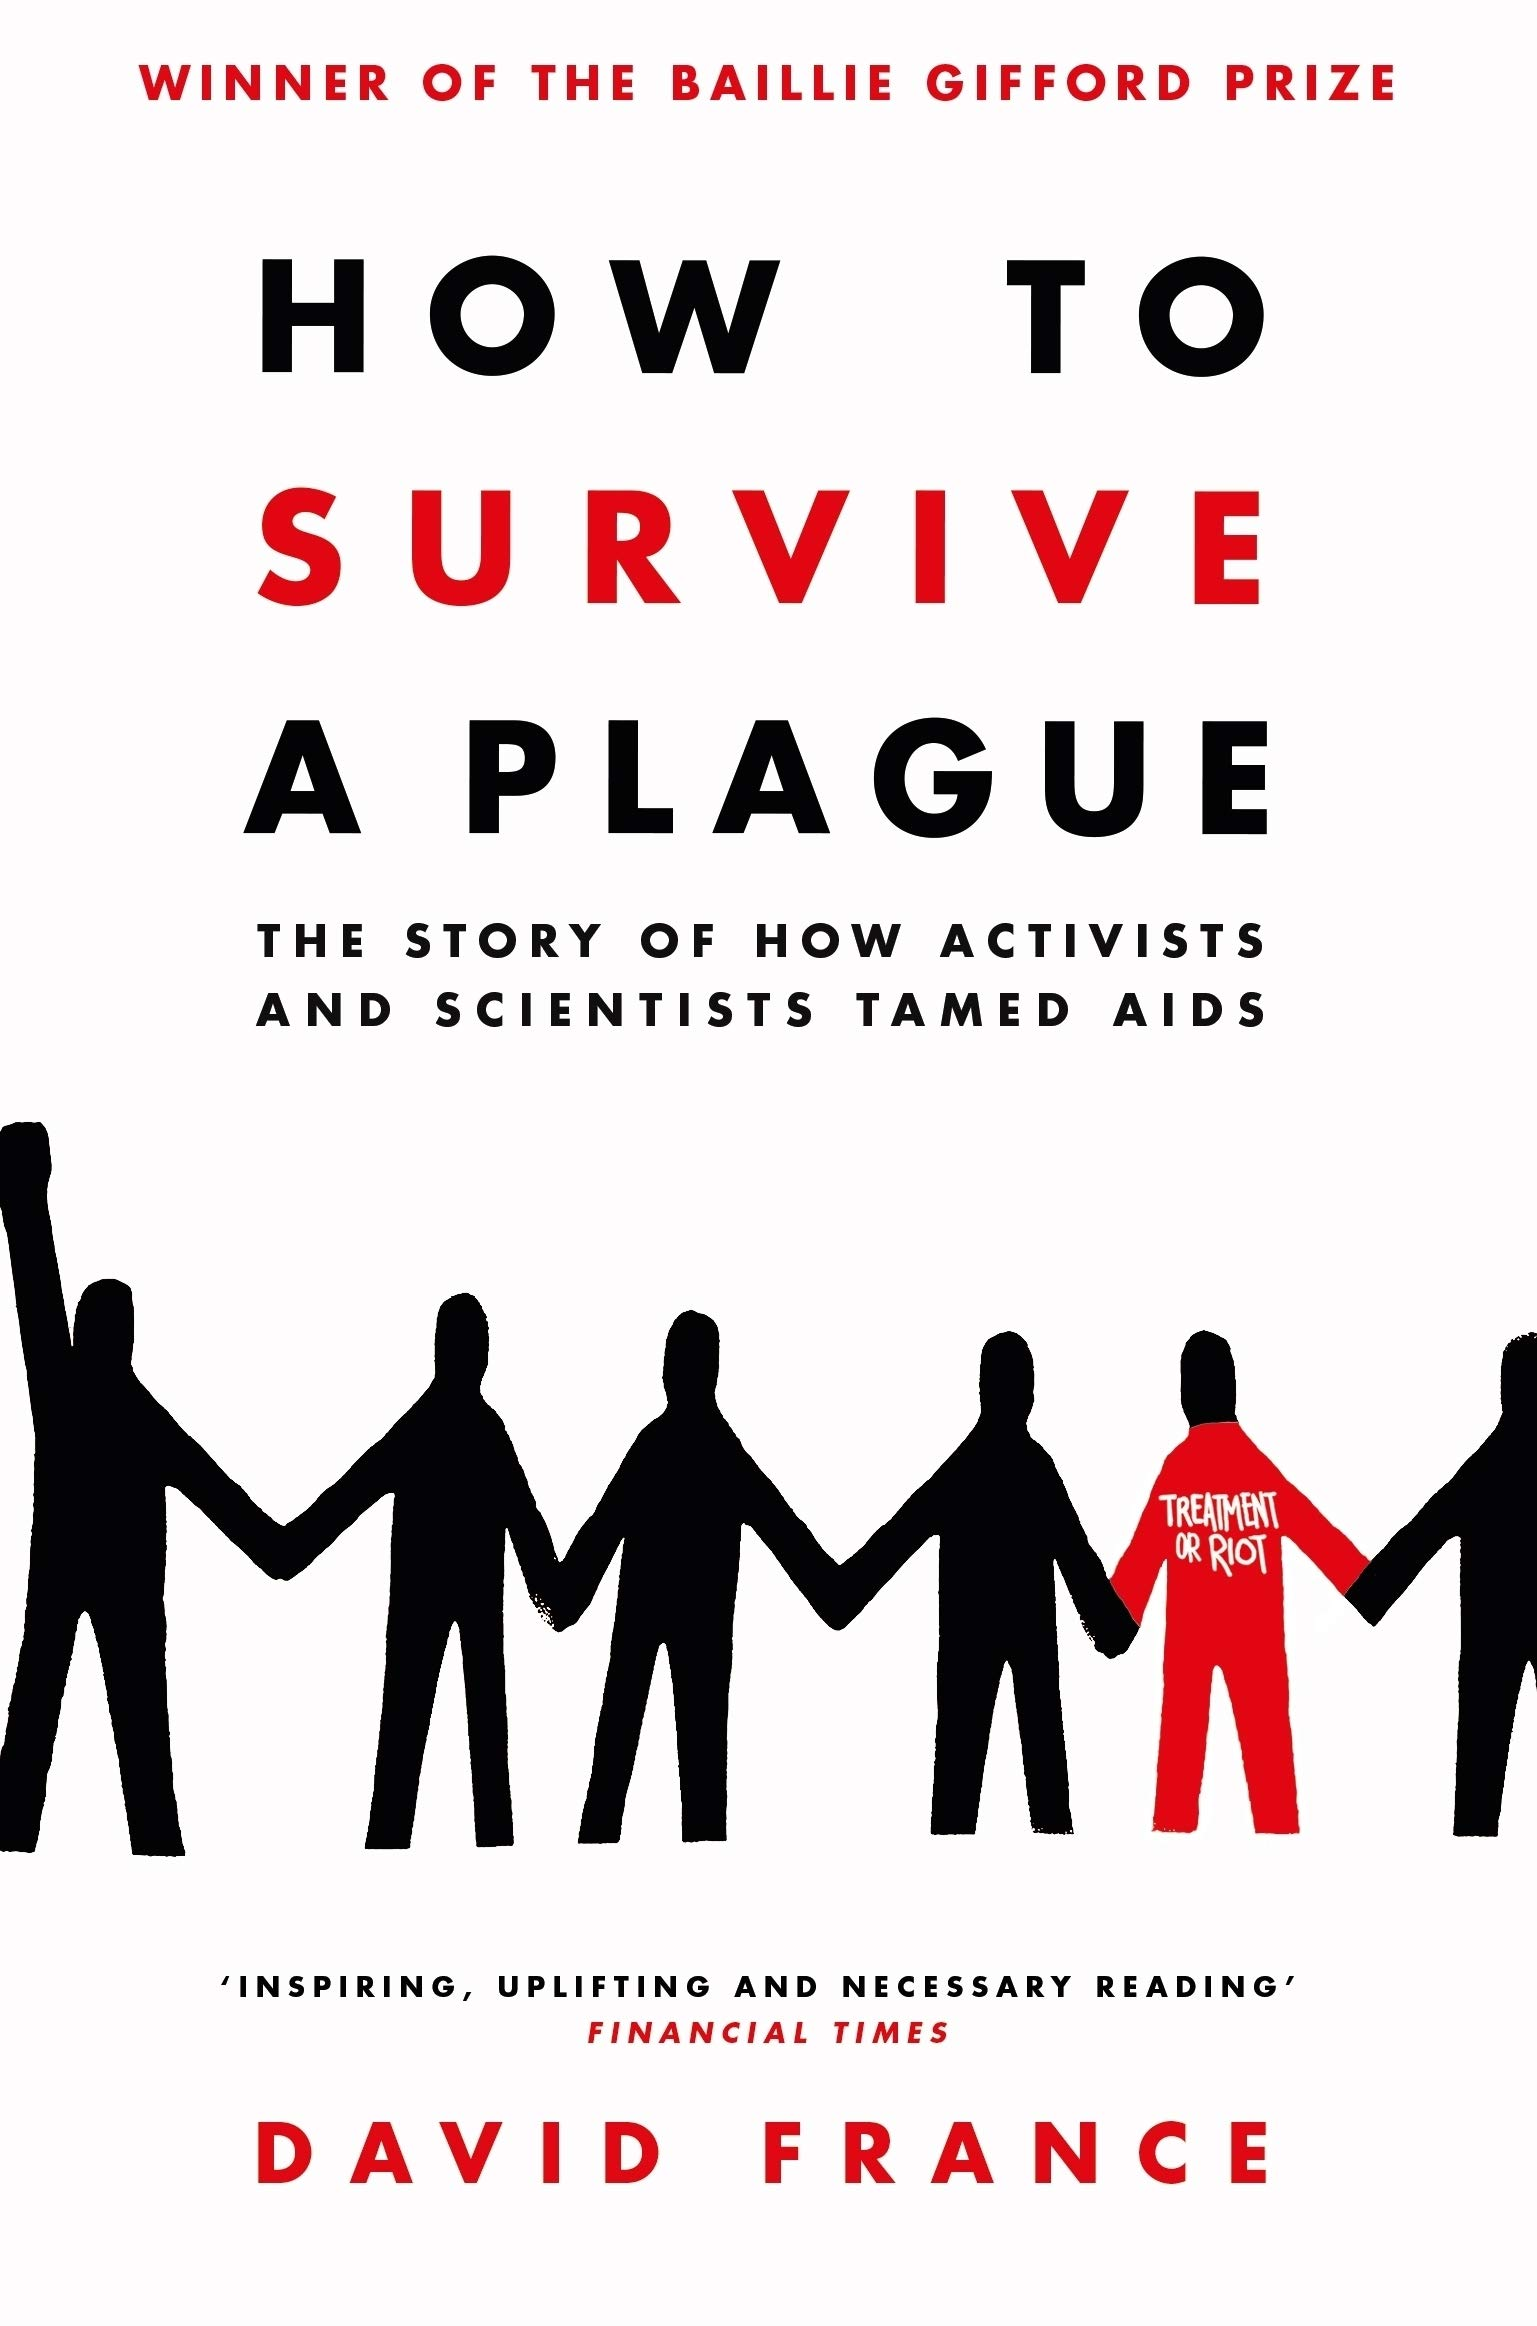 How to Survive a Plague: The Story of How Activists and Scientists Tamed  AIDS Paperback – September 21, 2017